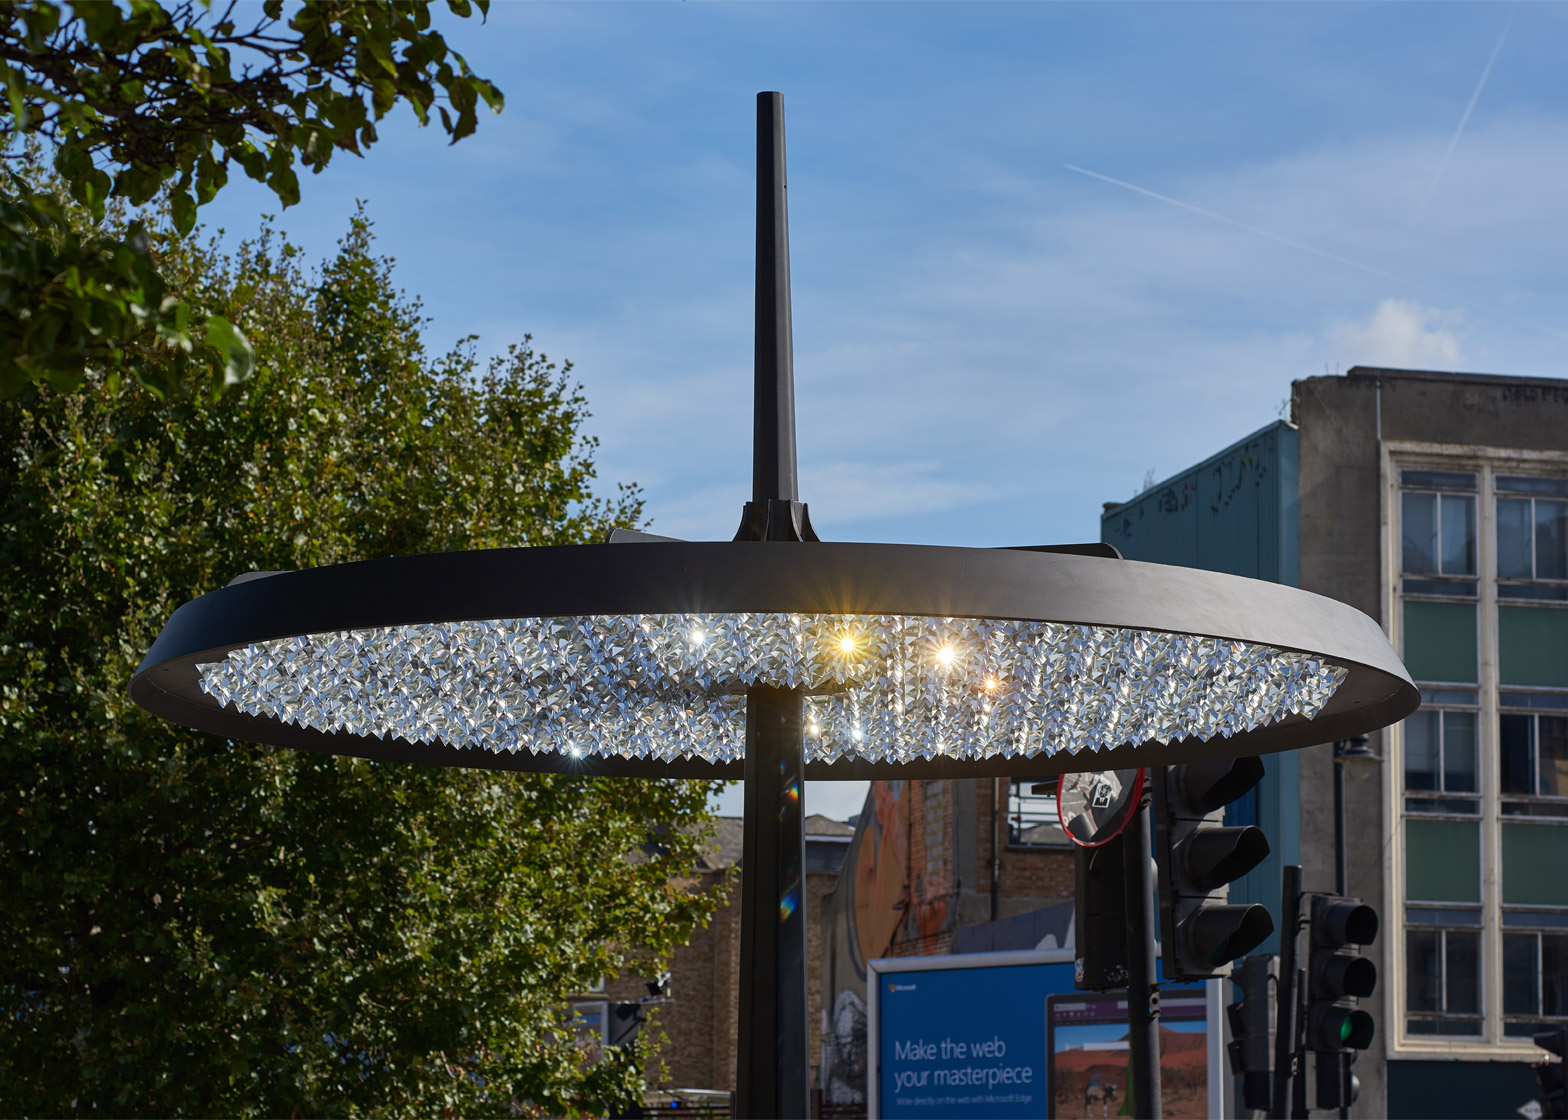 Ommatidium sculpture by Sam Wilkinson